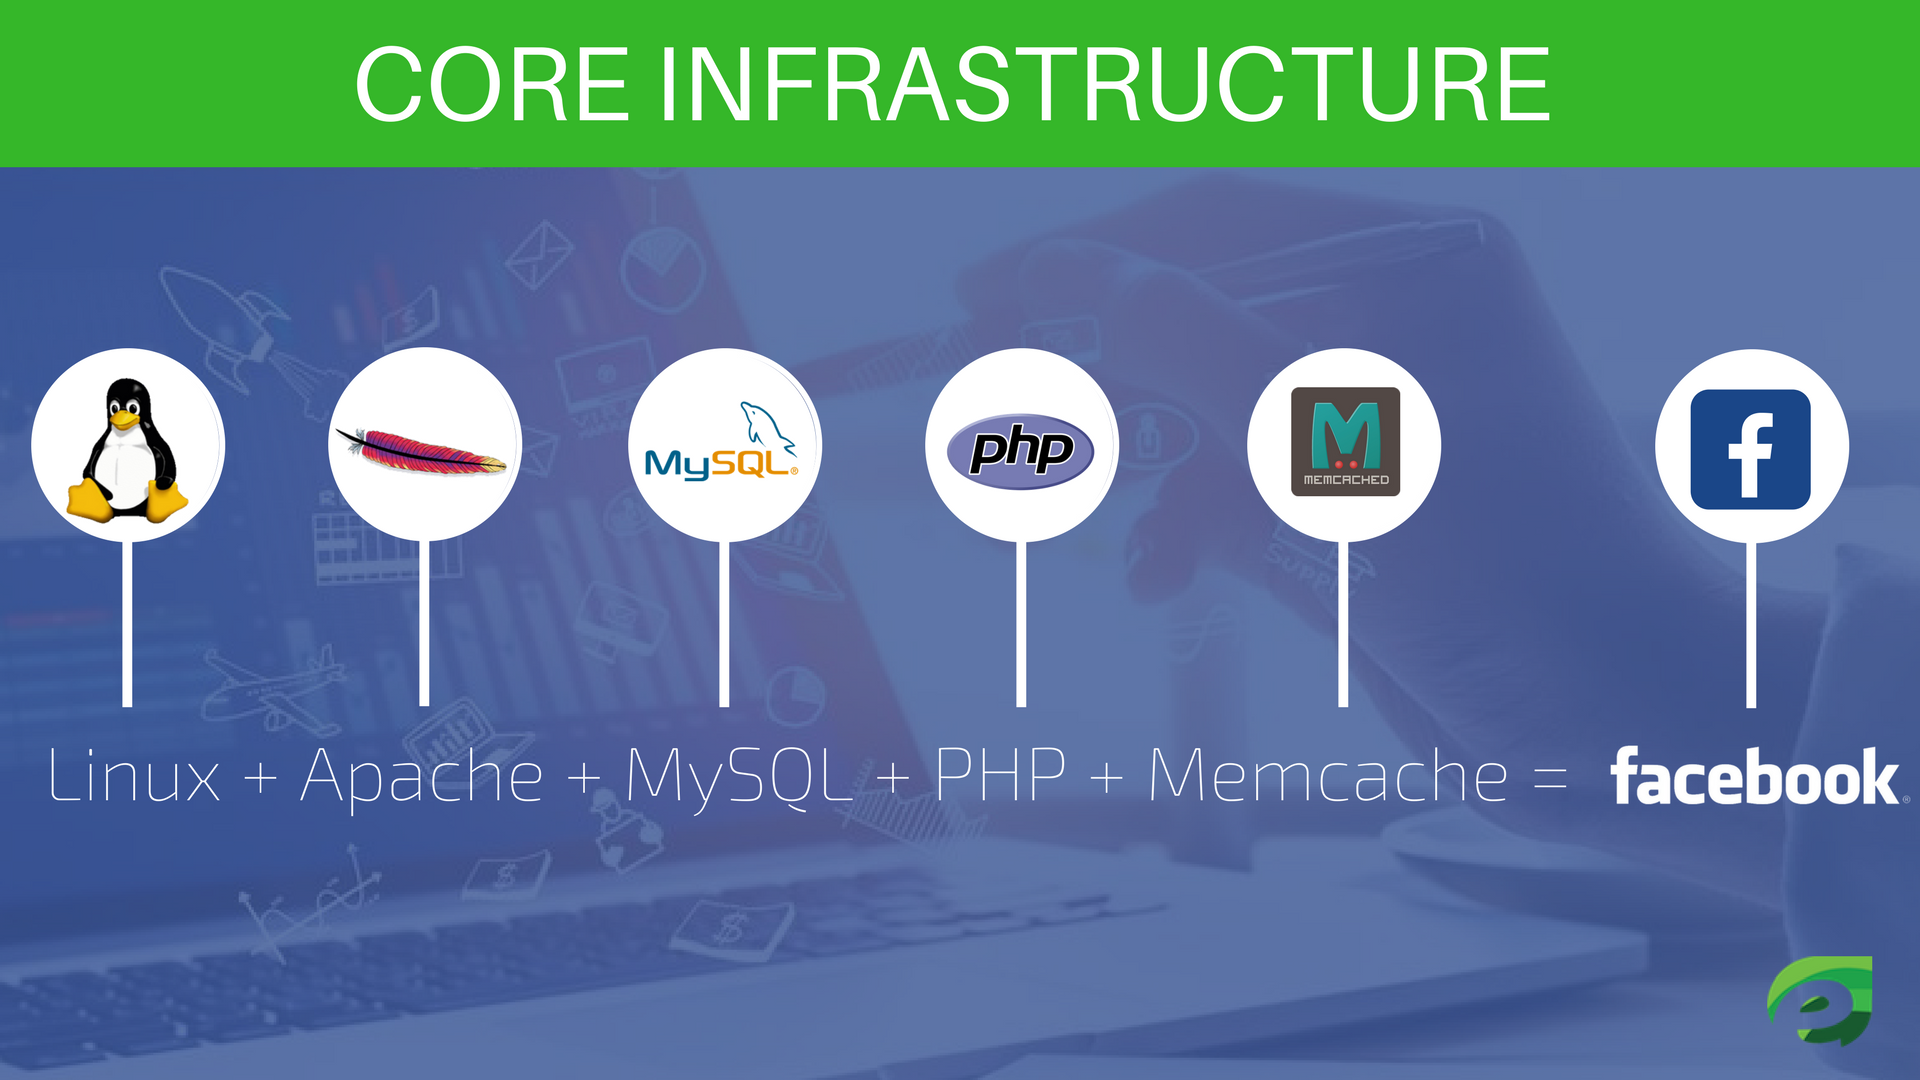 Core infrastructure - How Facebook Works